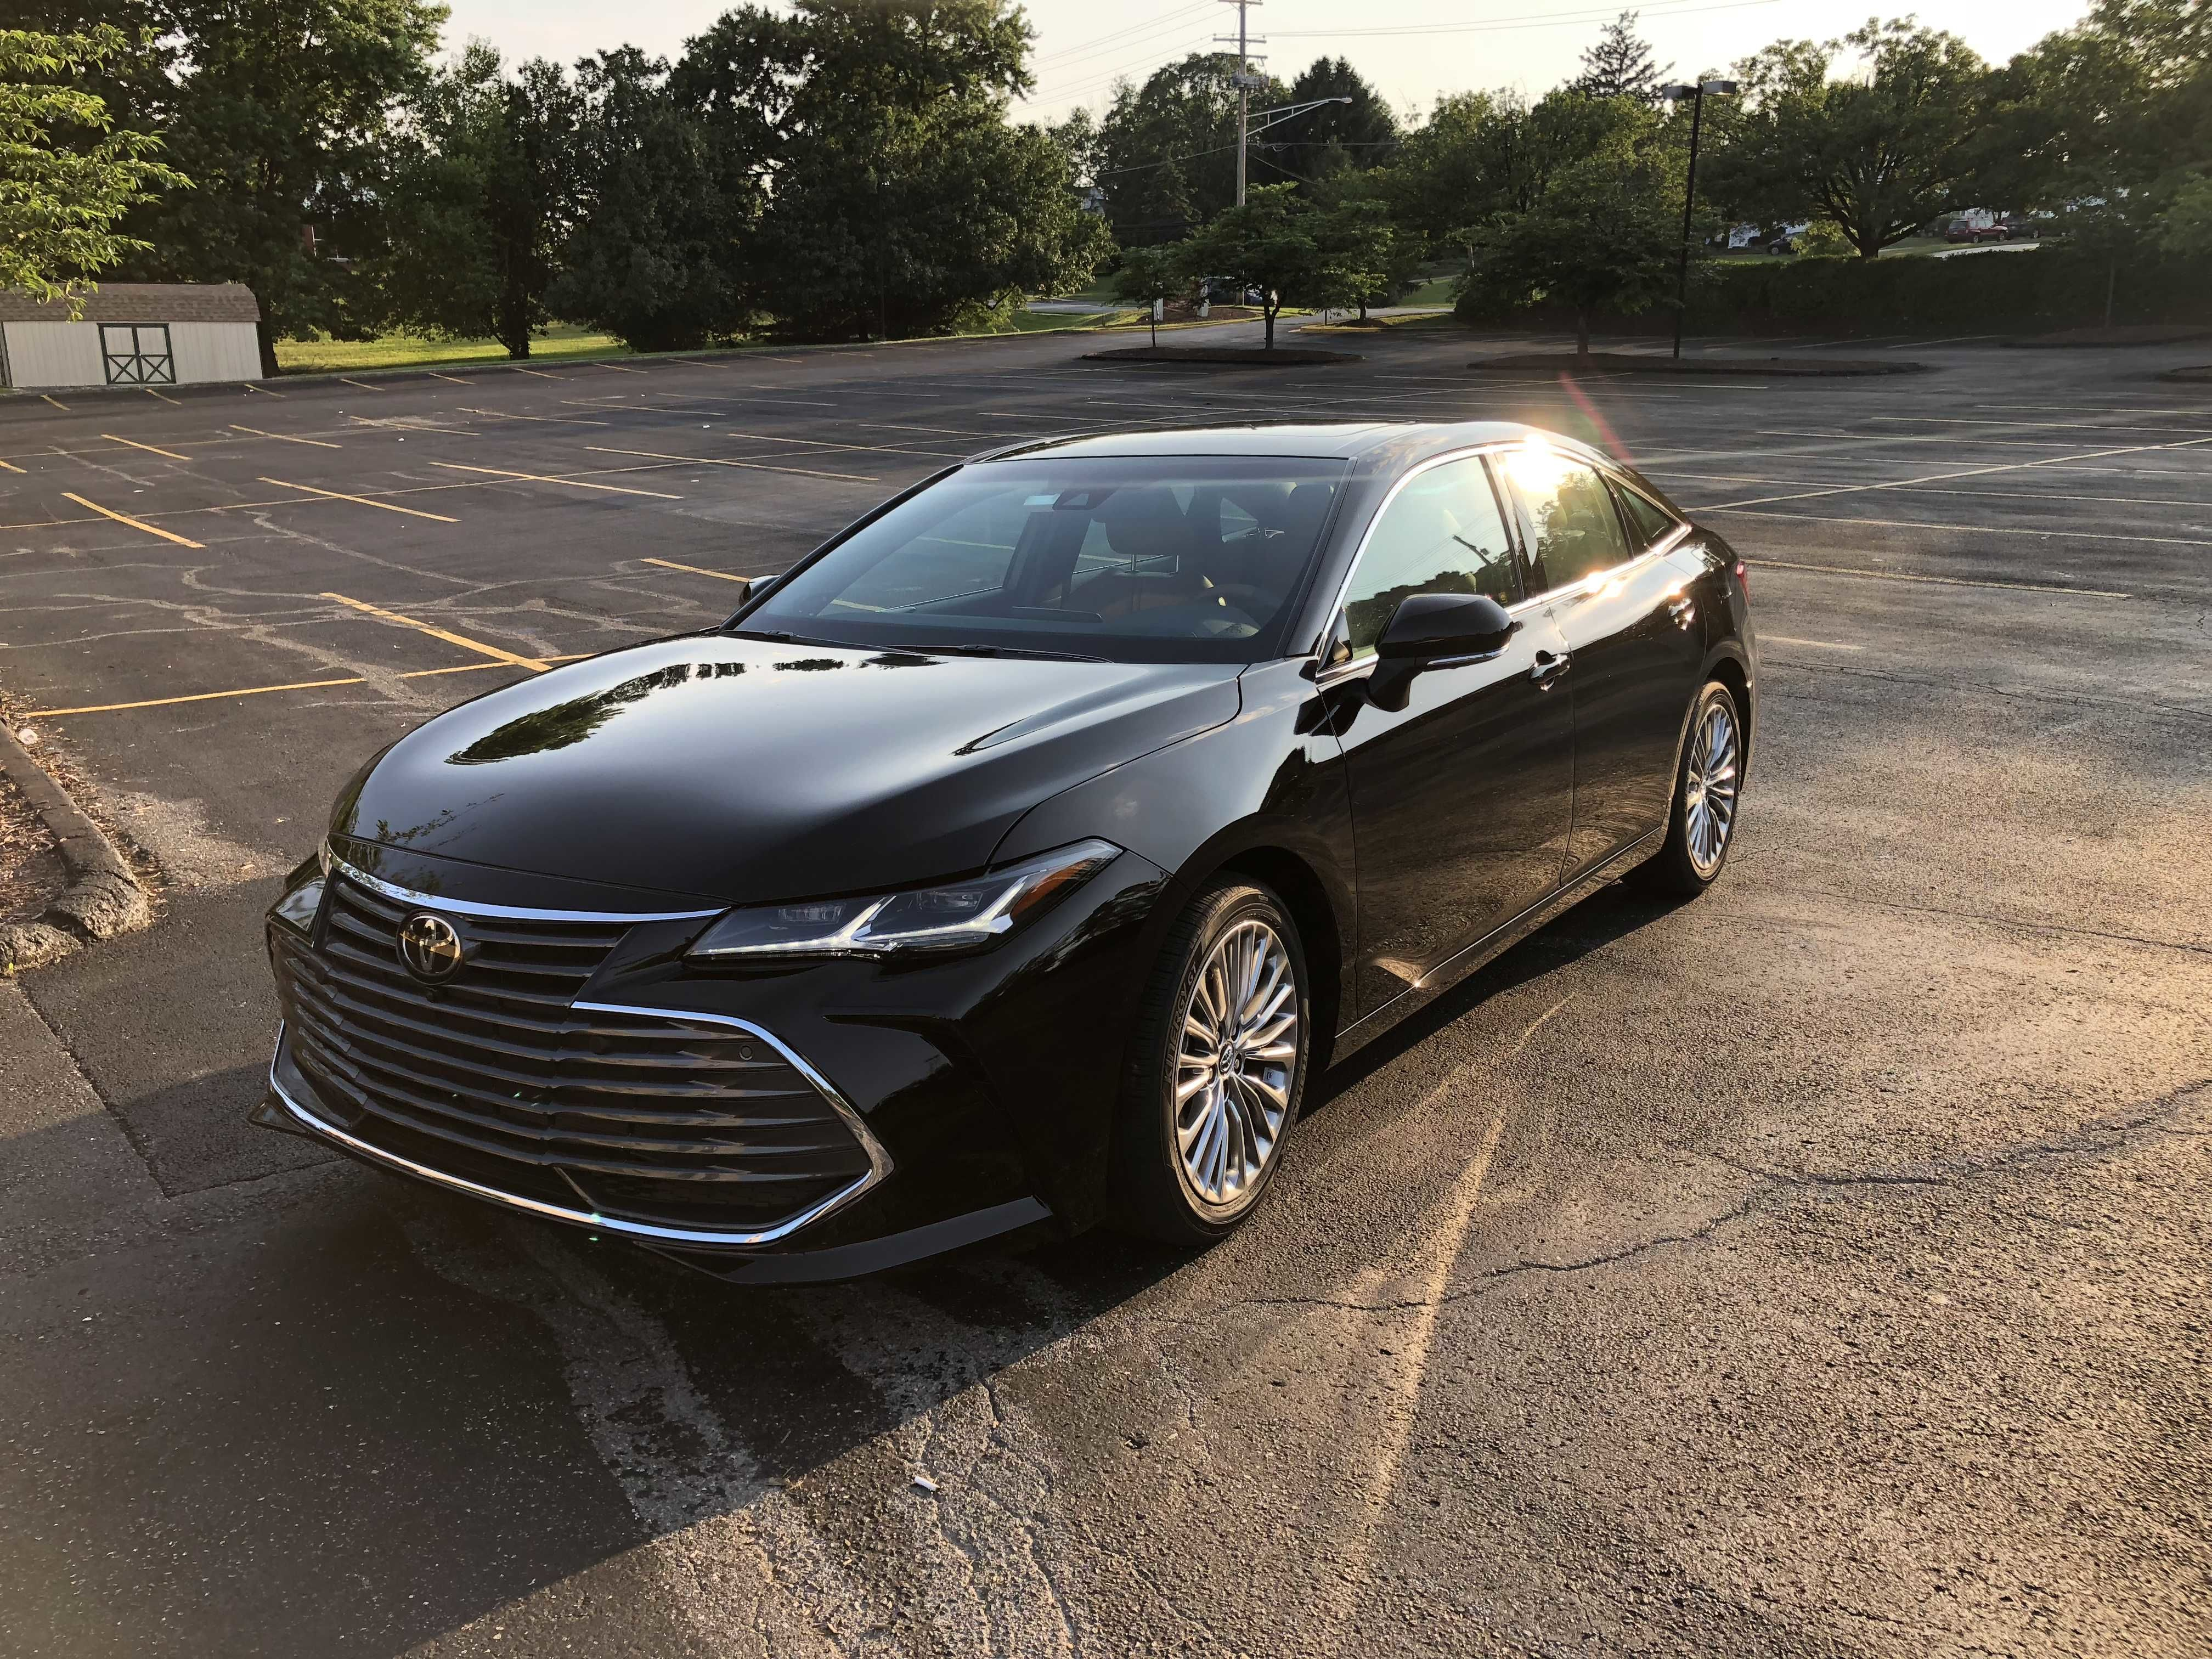 Car Review Toyota Remakes The Large Avalon Sedan Adding More Luxury For 2019 Wtop